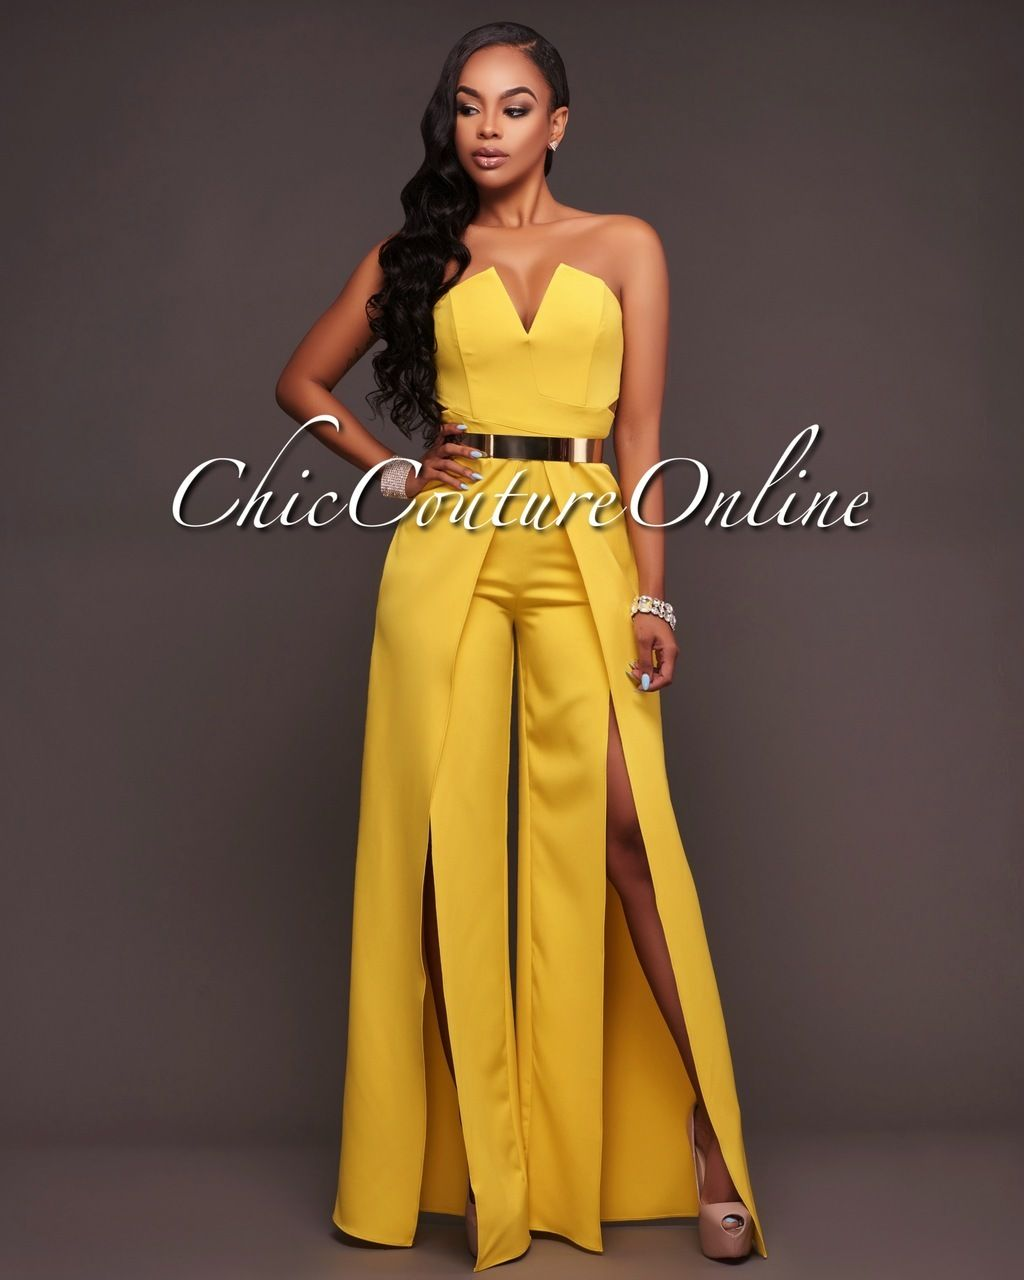 4420515a112 Chic Couture Online - Jaiden Lime Yellow Wide Slit Legs Jumpsuit